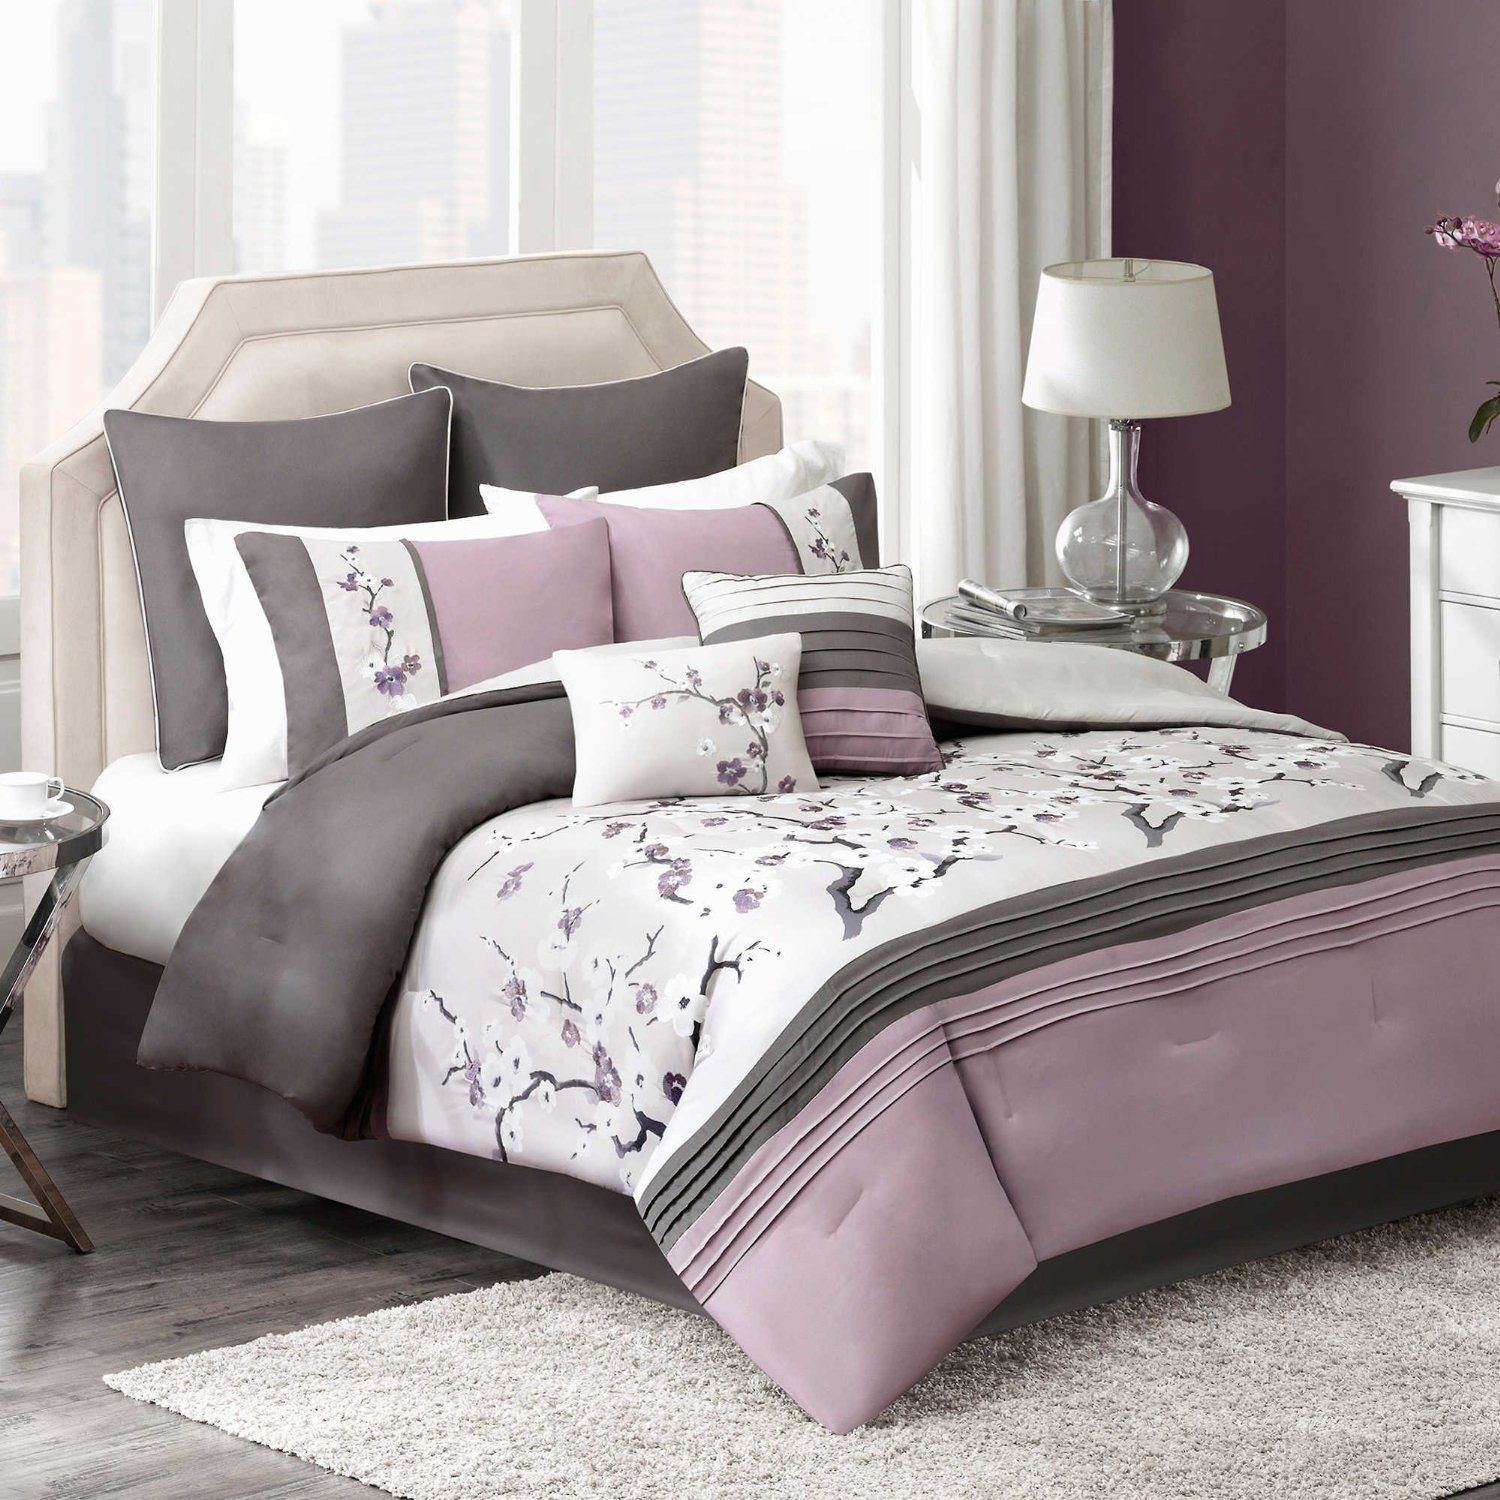 Modern Elegant Plum Bedding Floral Embroidered Comforter Set